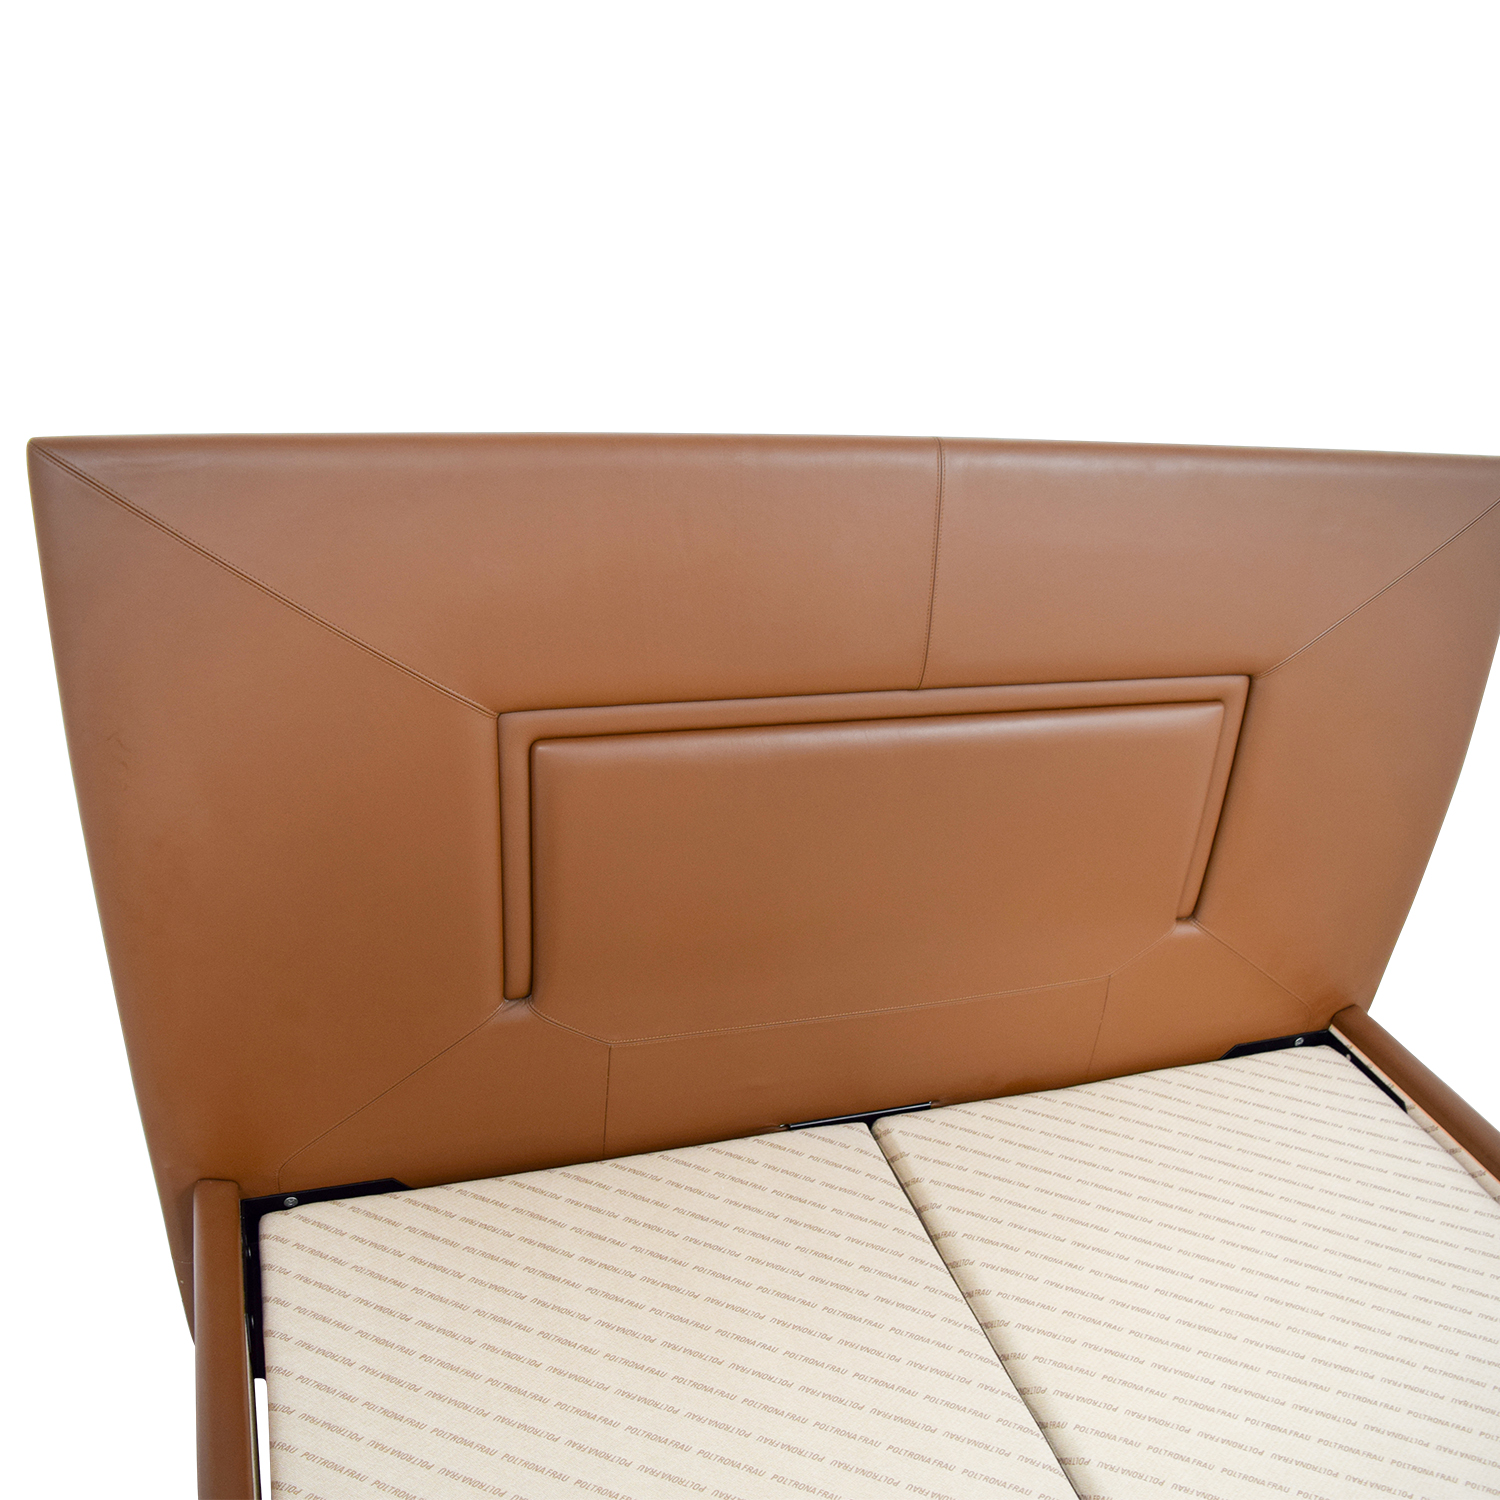 Aurora Uno Aurora Uno Brown Leather Queen Bed Frame on sale